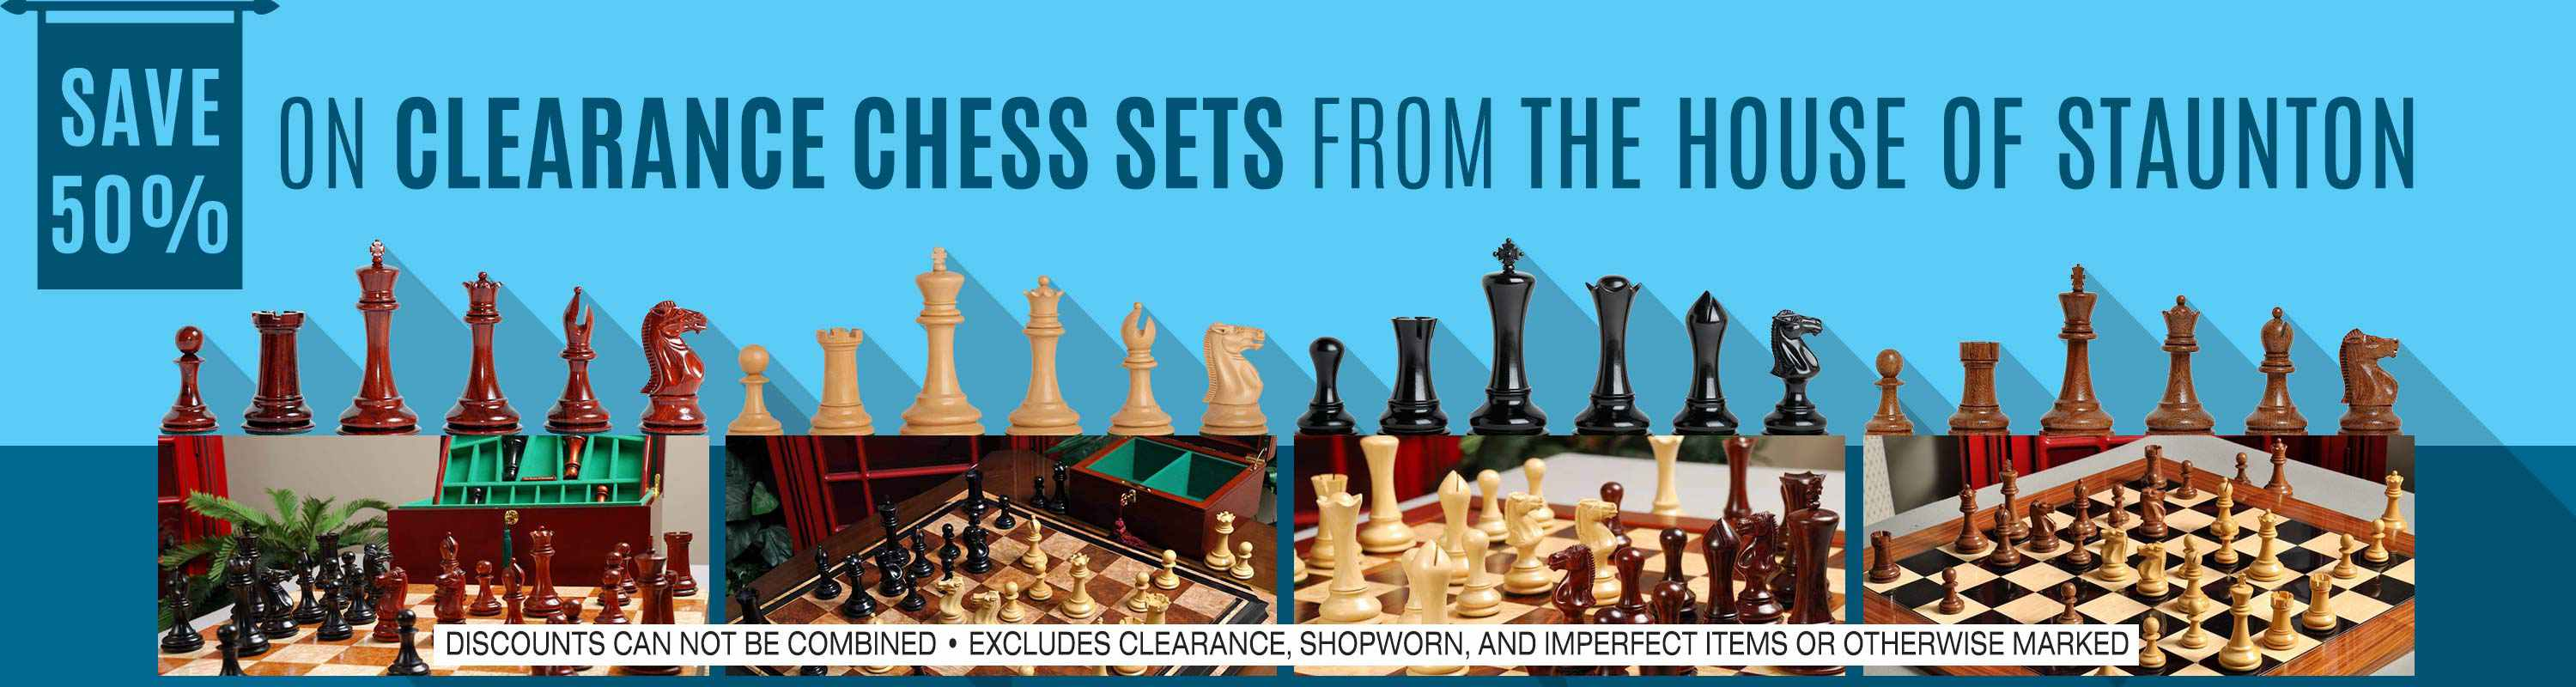 Save 50% on clearance chess sets from The House of Staunton